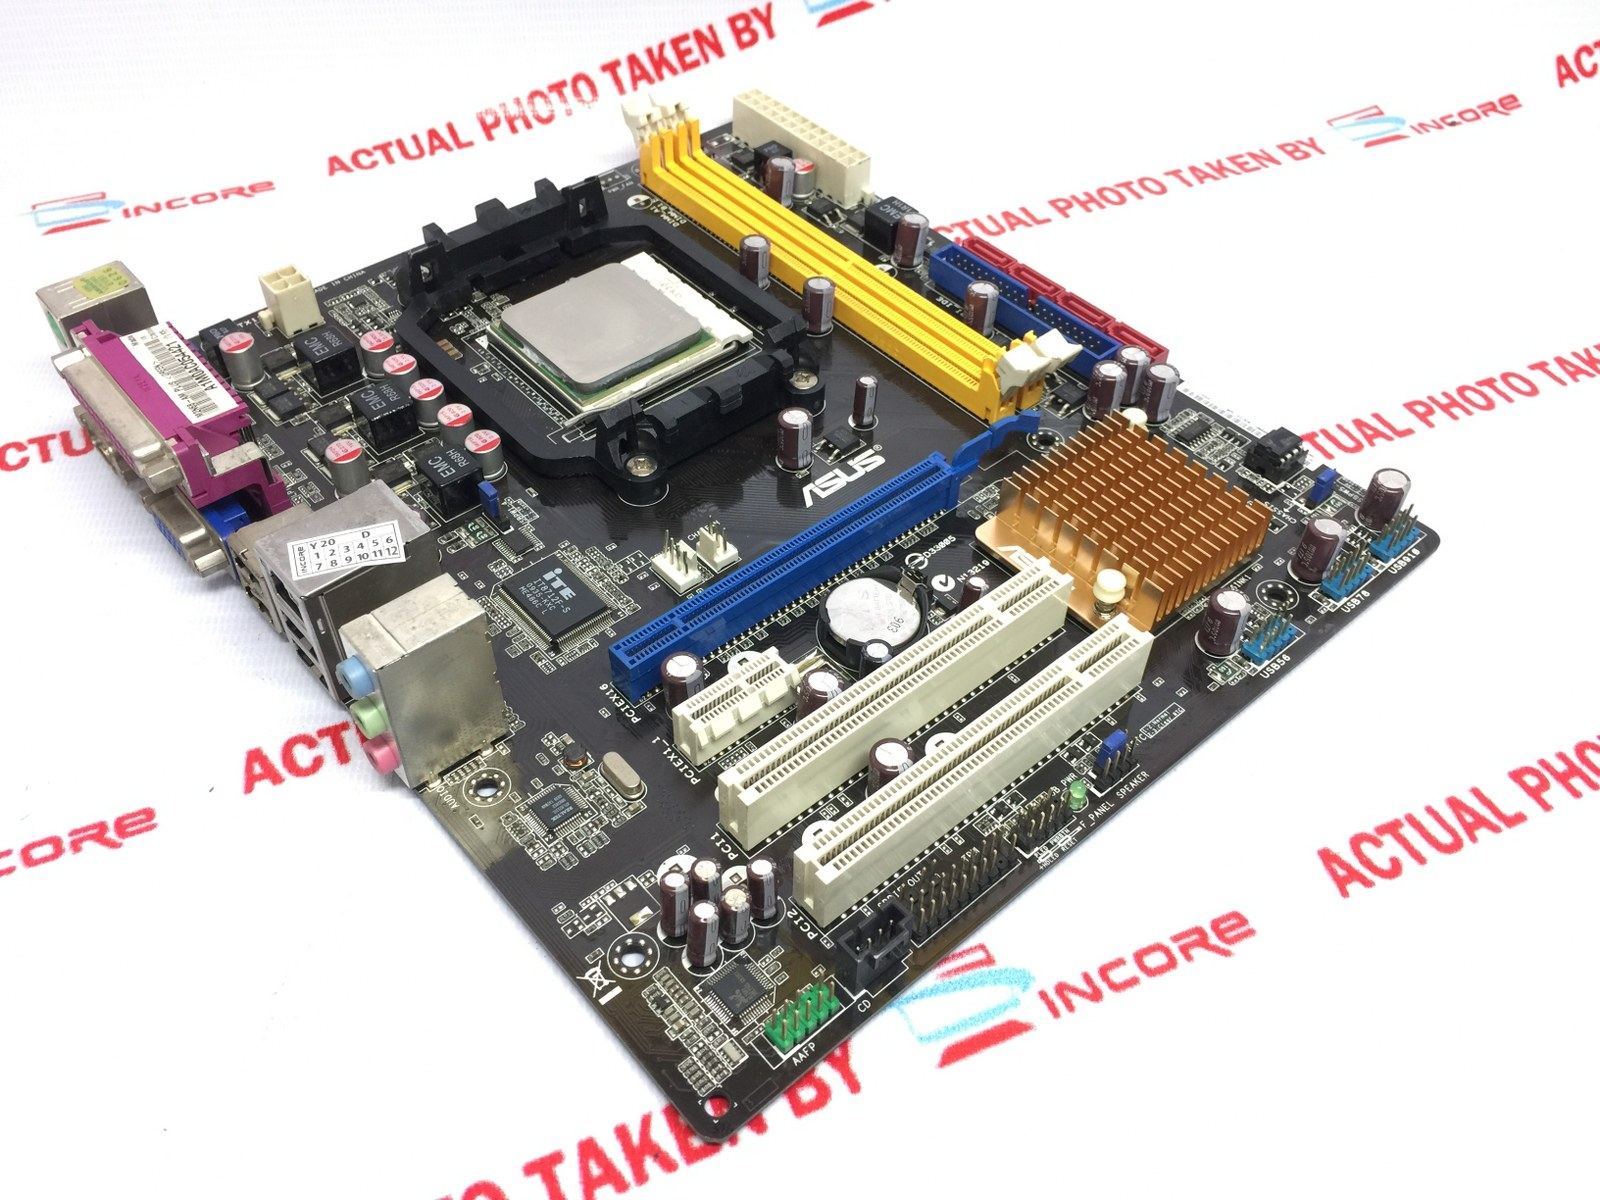 Asus M2n68 Am Plus Free Cpu Amd End 7 9 2020 1200 Mother Board Circuit Am3 Am2 2